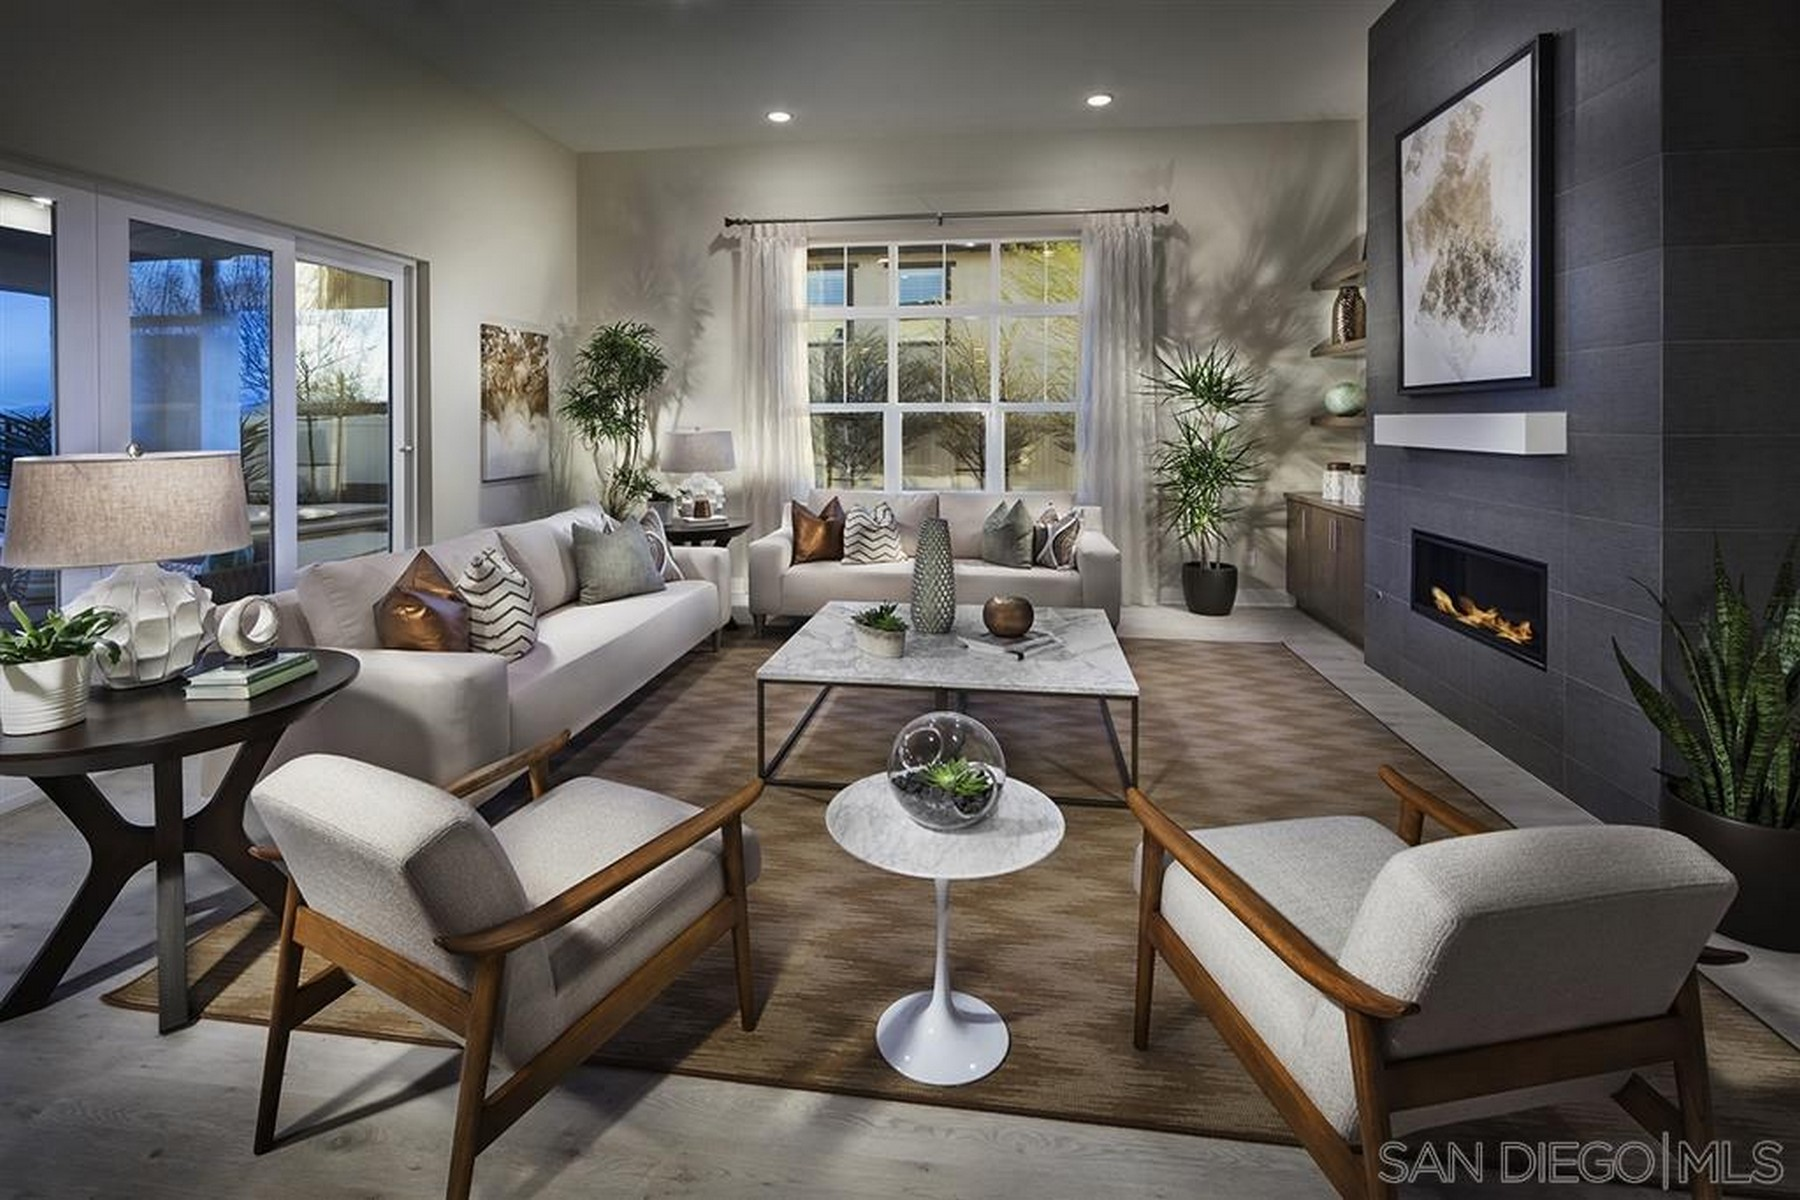 Single Family Homes for Active at Santee New Construction with a large backyard! 9096 Trailmark Way Lot 271 Santee, California 92071 United States